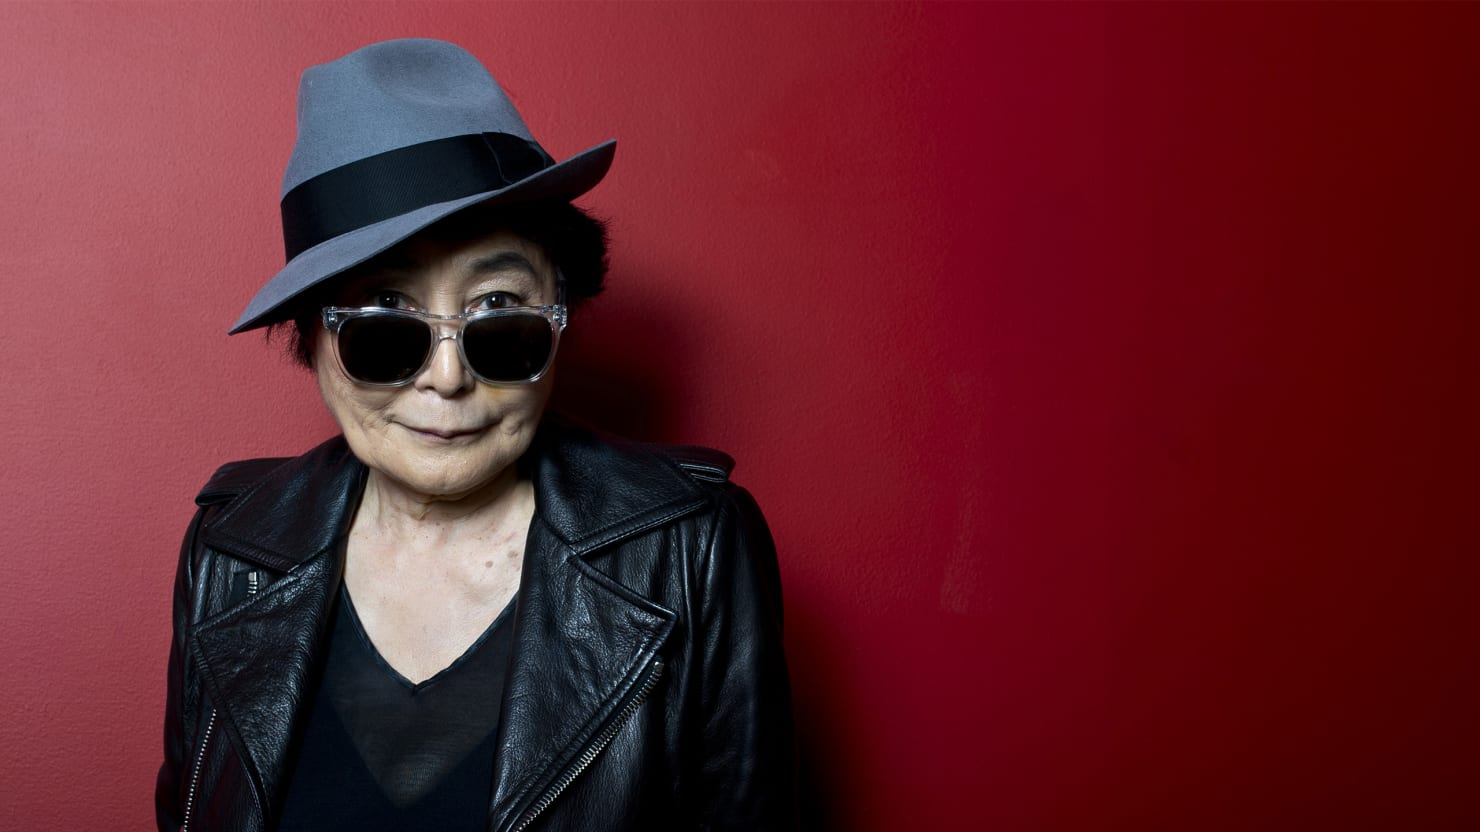 Ono Talks Candidly About Why She Still Lives In Fear Of Mark David Chapman The Truth Lennons Bisexuality And Pain Shares With Paul